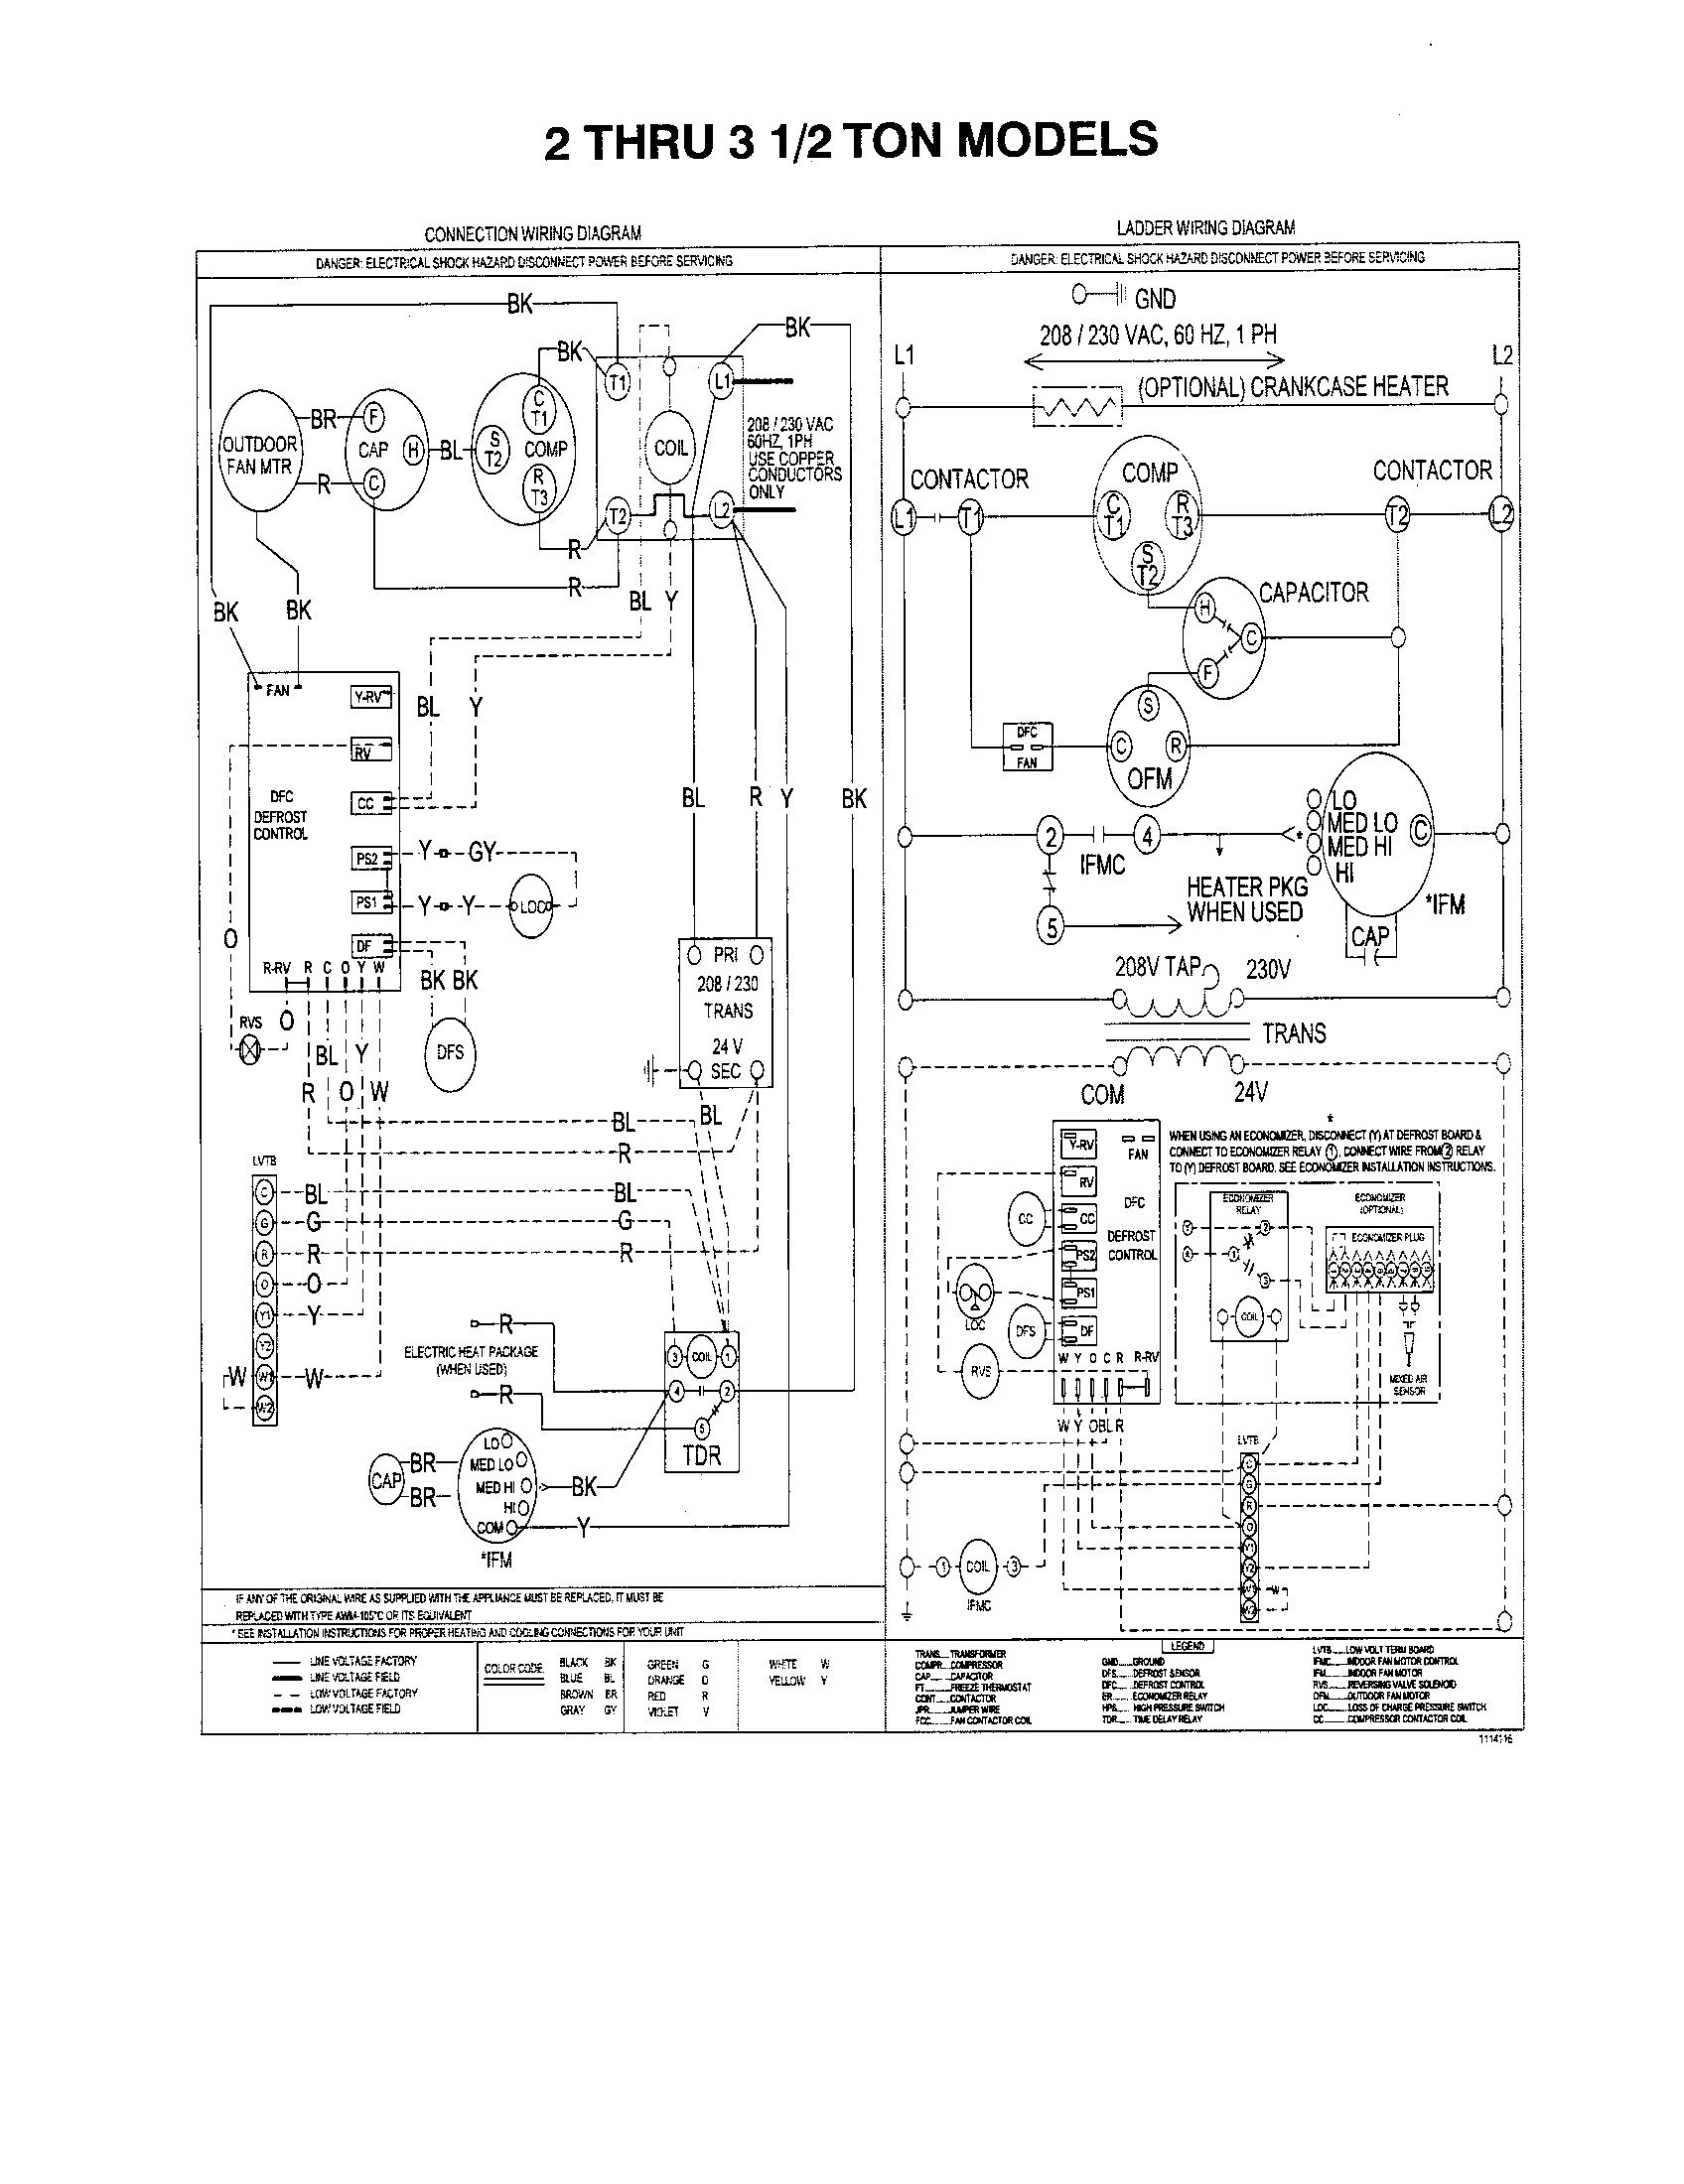 york rooftop unit wiring diagram Collection-Wiring Diagram For A Ac Unit Valid Outstanding York Rooftop Wiring Diagrams Ornament Simple Wiring 9-a